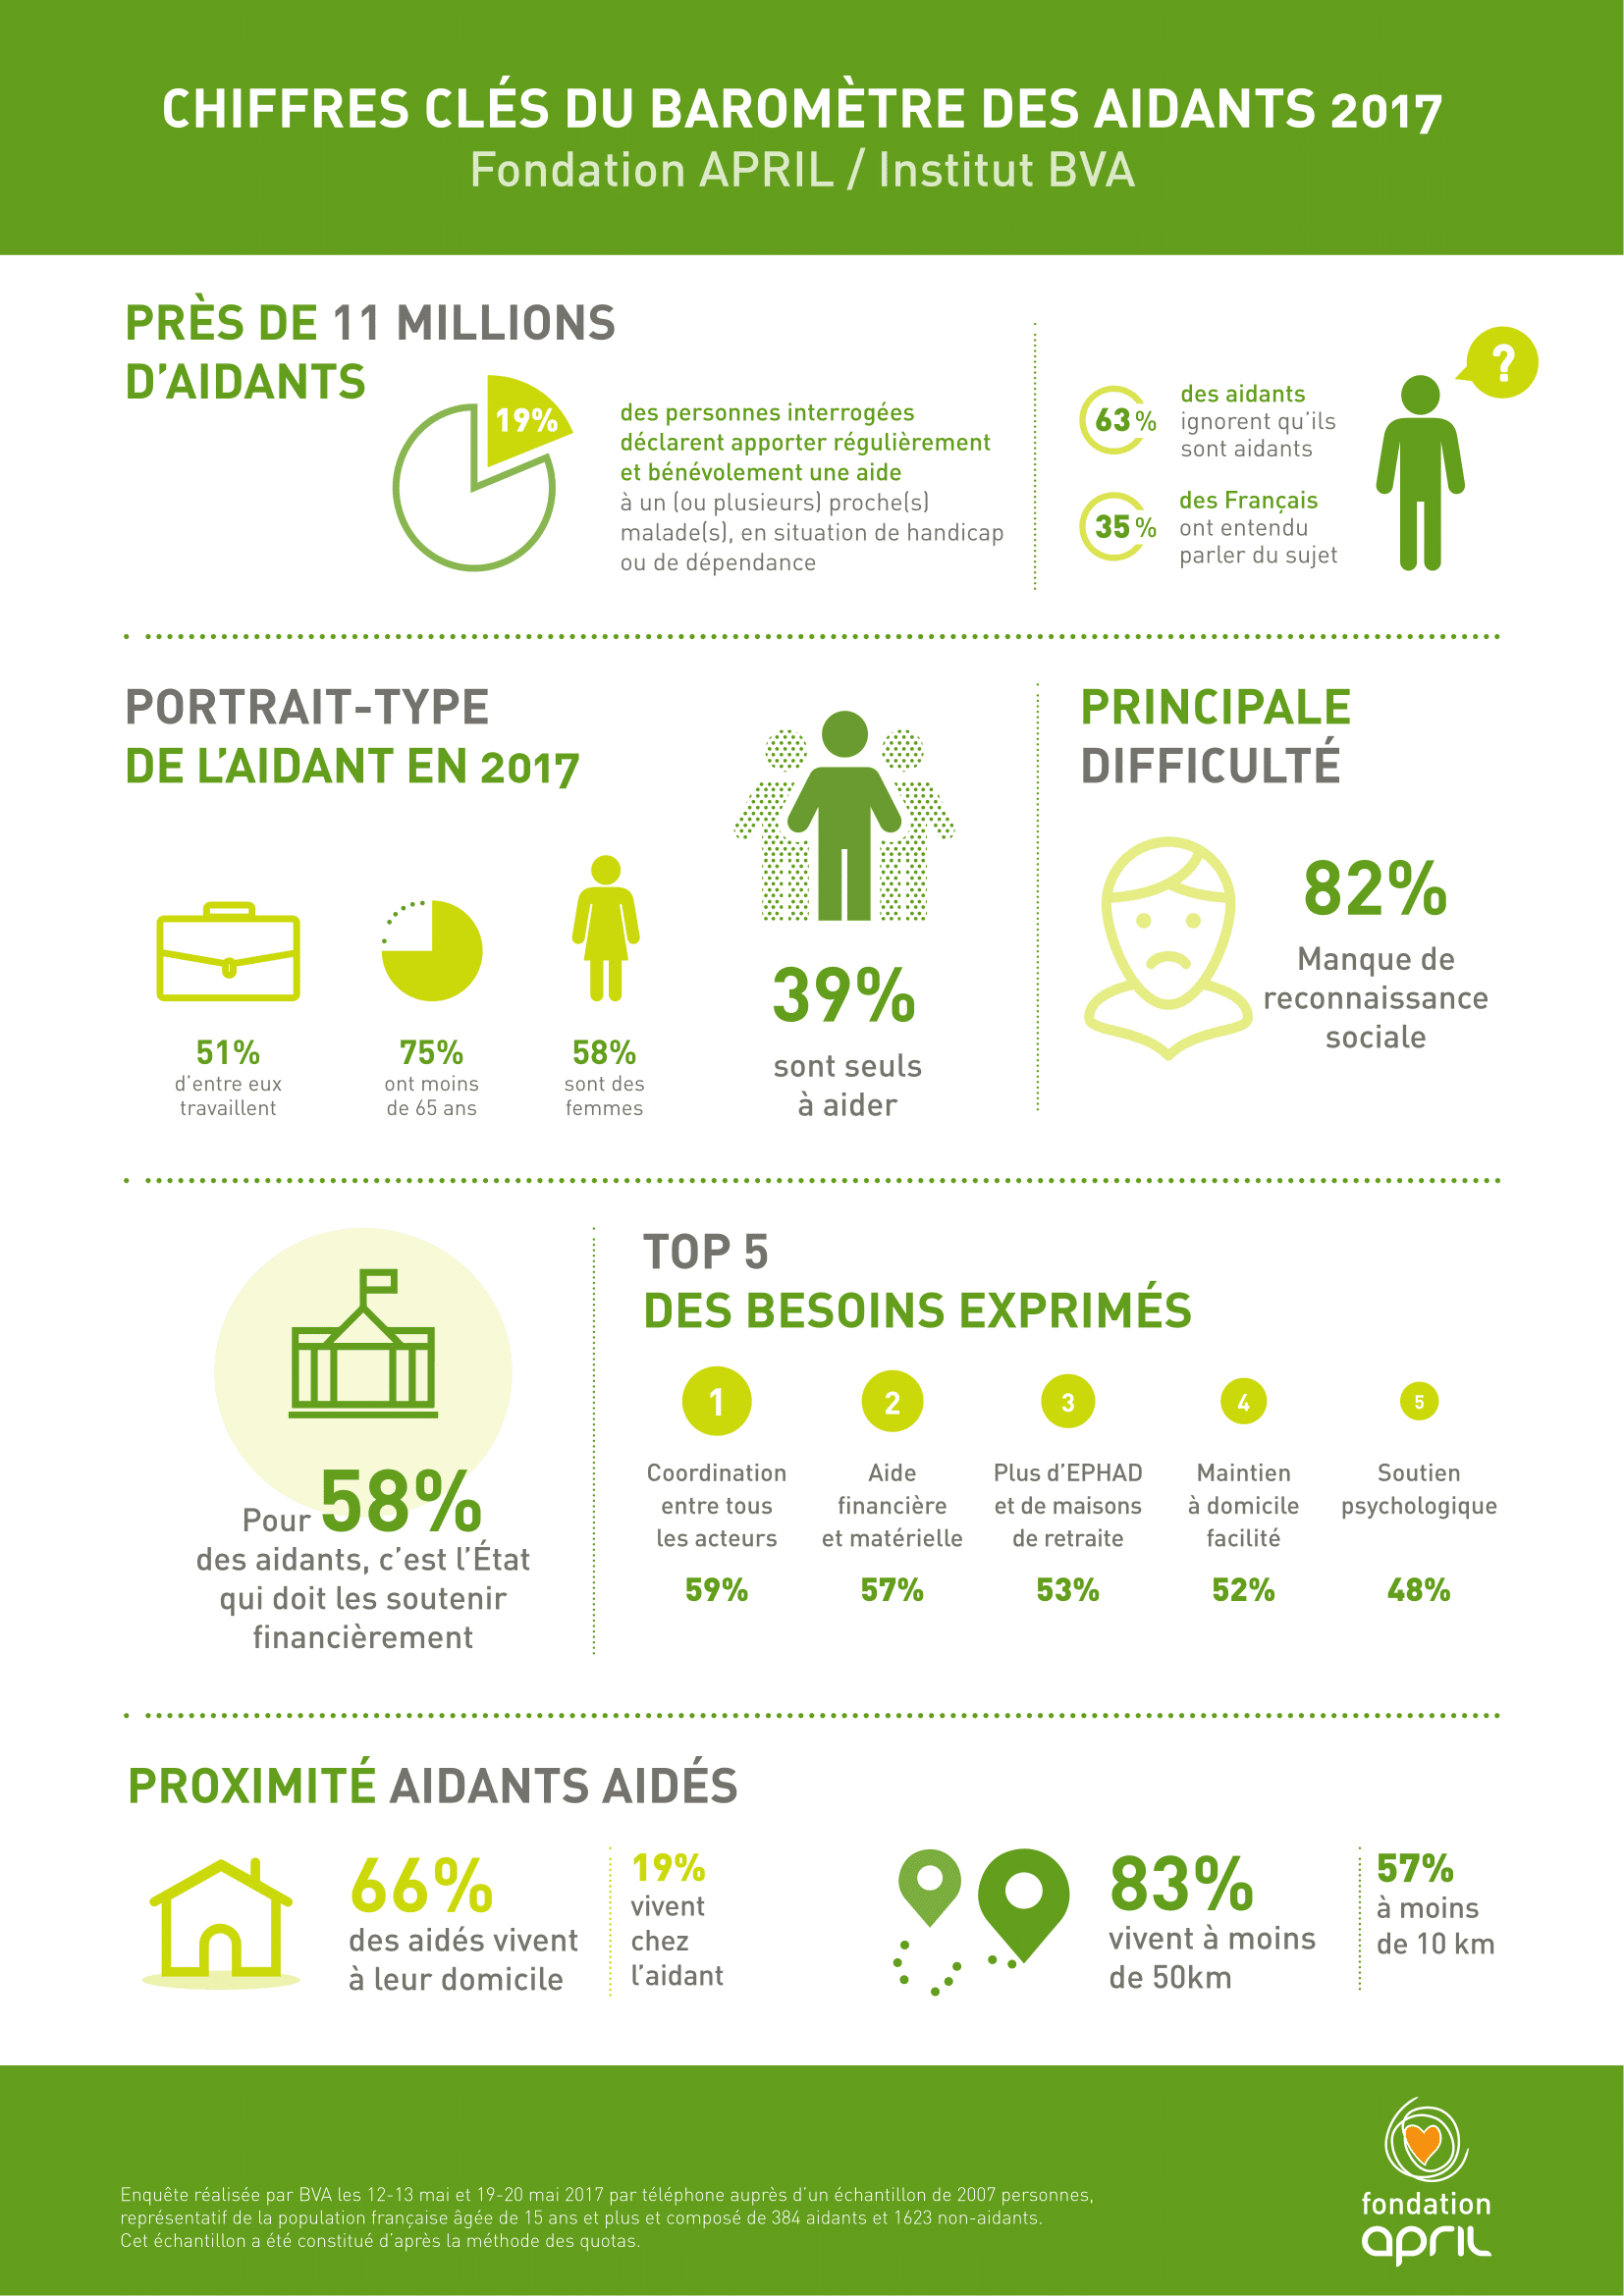 April_BaromètreAidants_Infographie-1